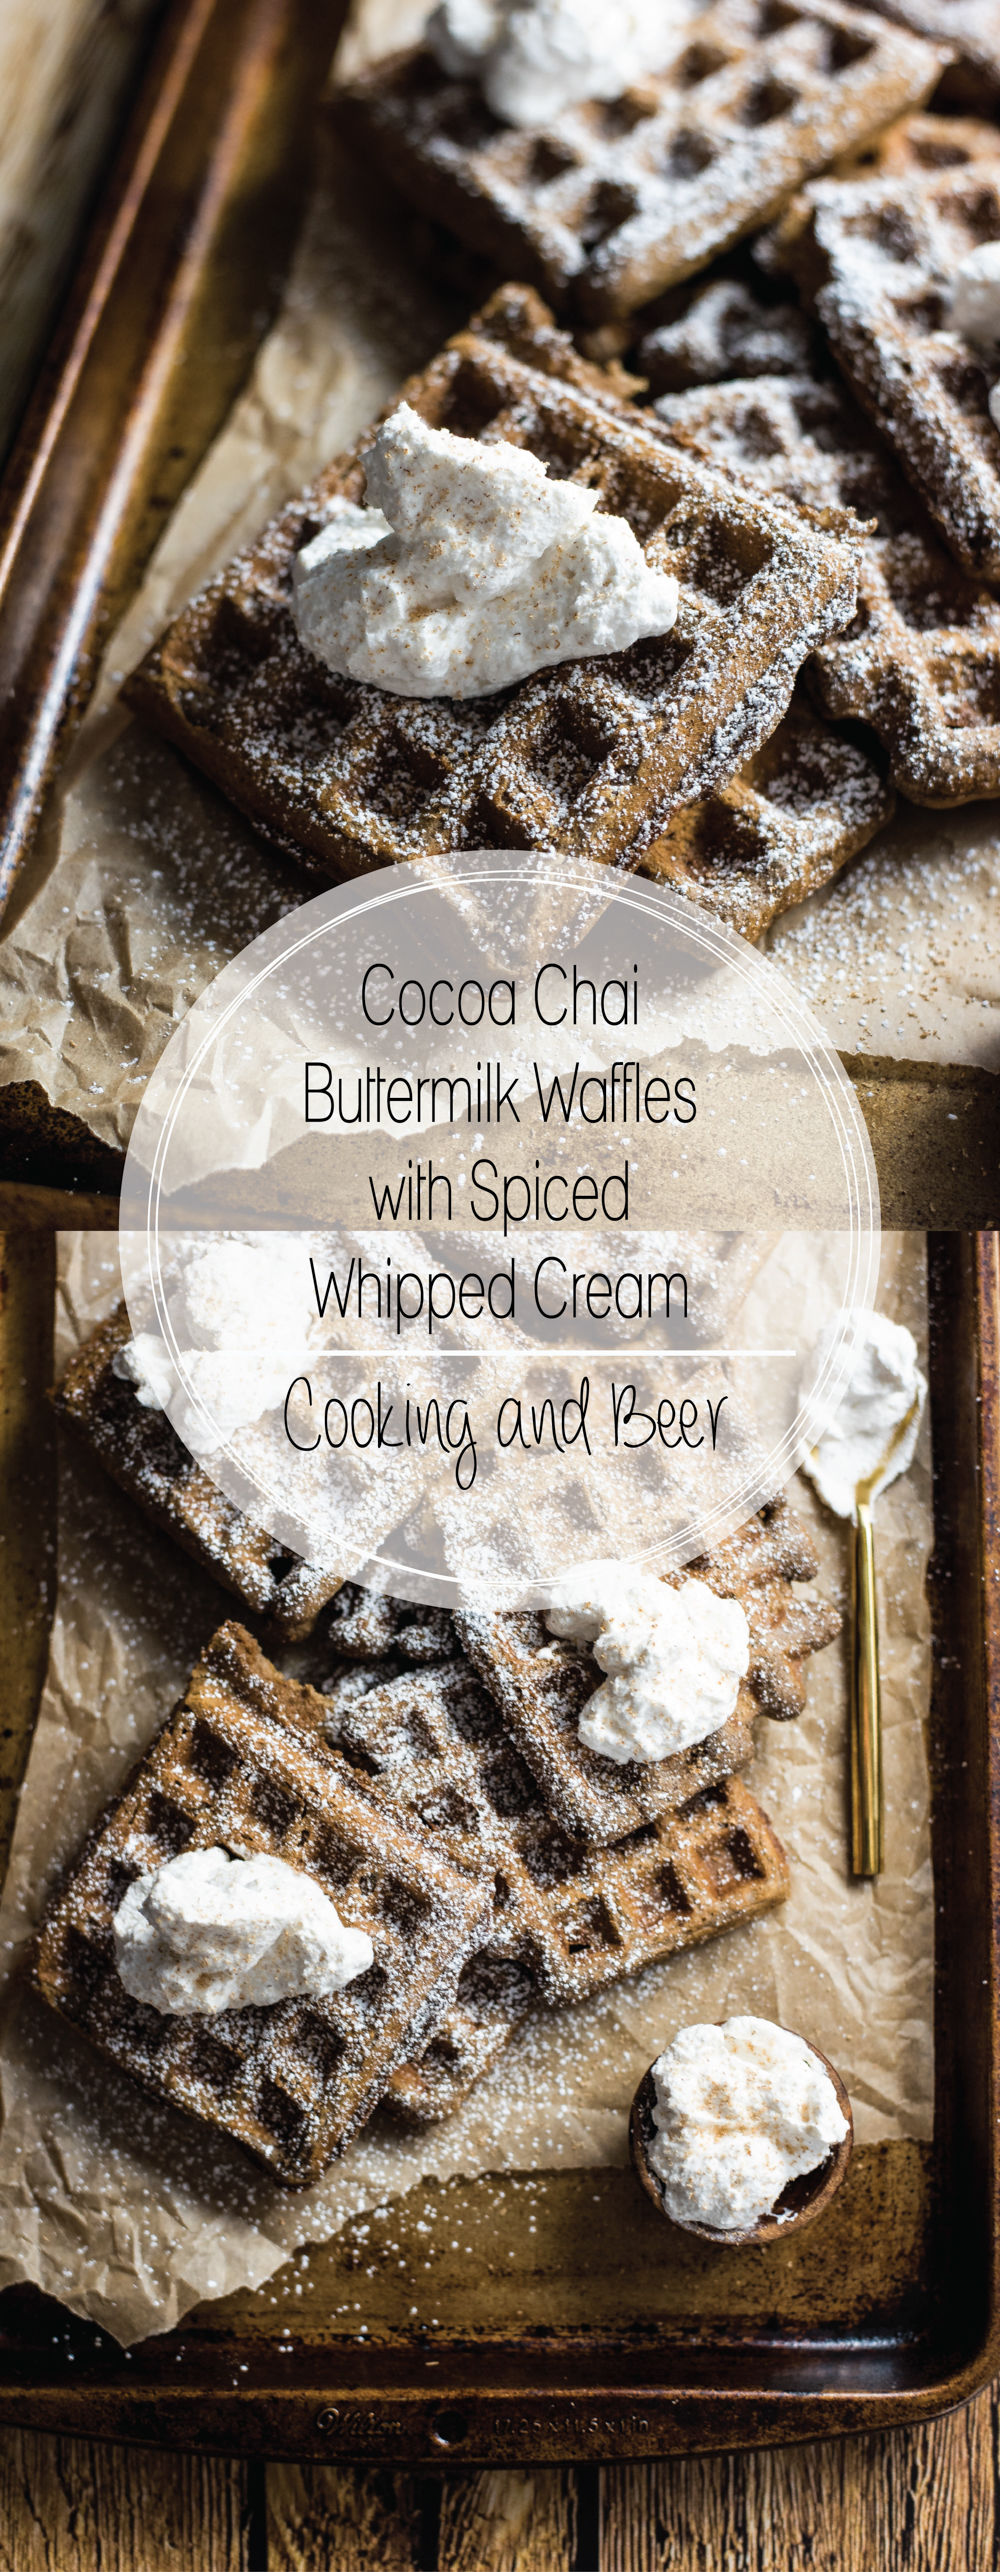 Cocoa chai buttermilk waffles with spiced whipped cream are the perfect weekend brunch recipe! They are comforting and delicious!